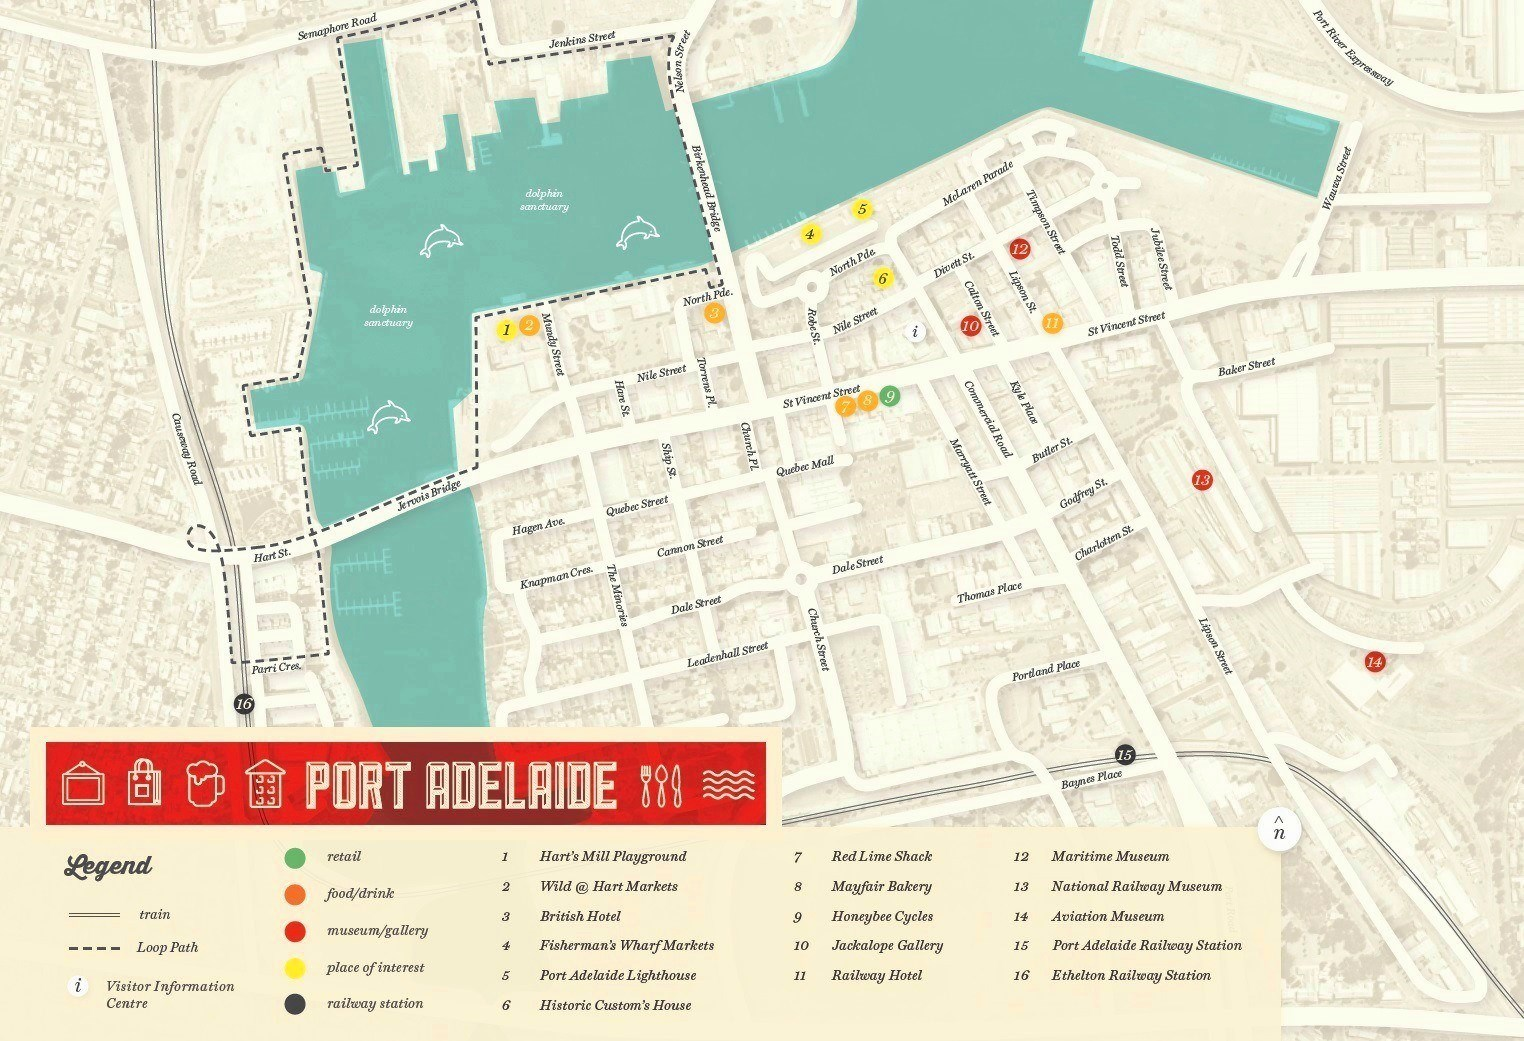 Our Precincts Our Port